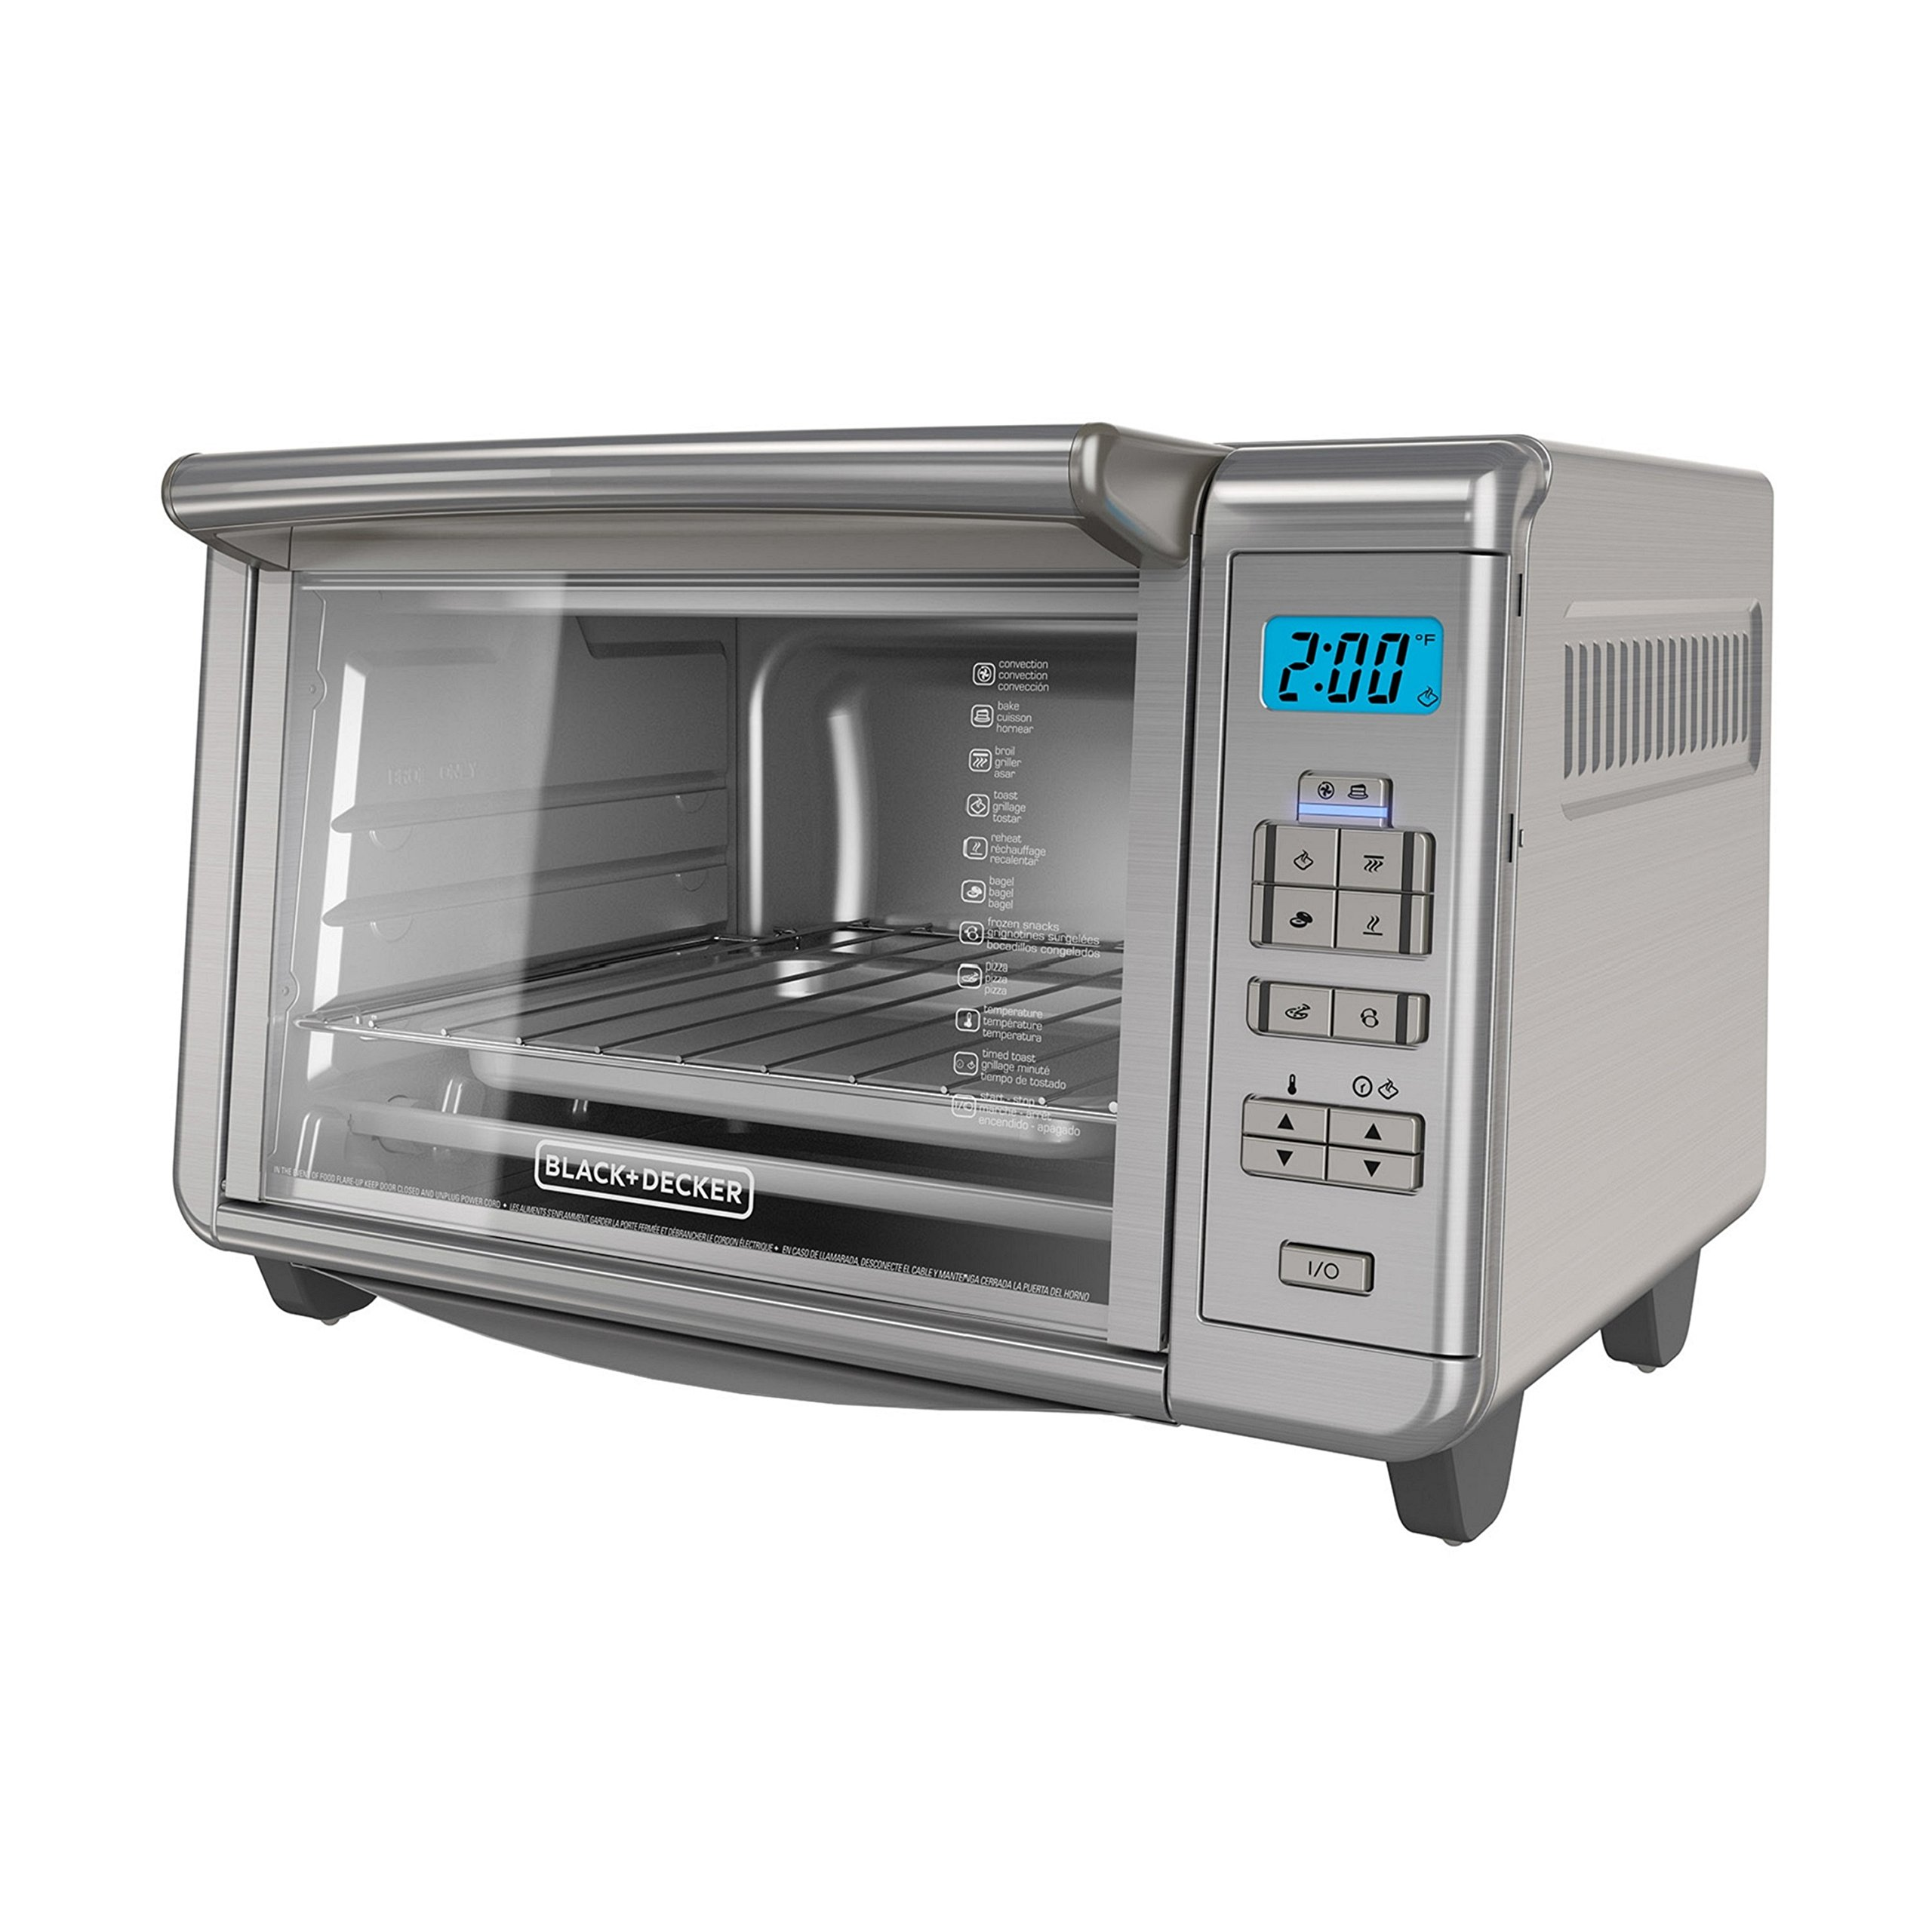 BLACK+DECKER 6-Slice Digital Convection Countertop Toaster Oven, Stainless Steel, TO3280SSD